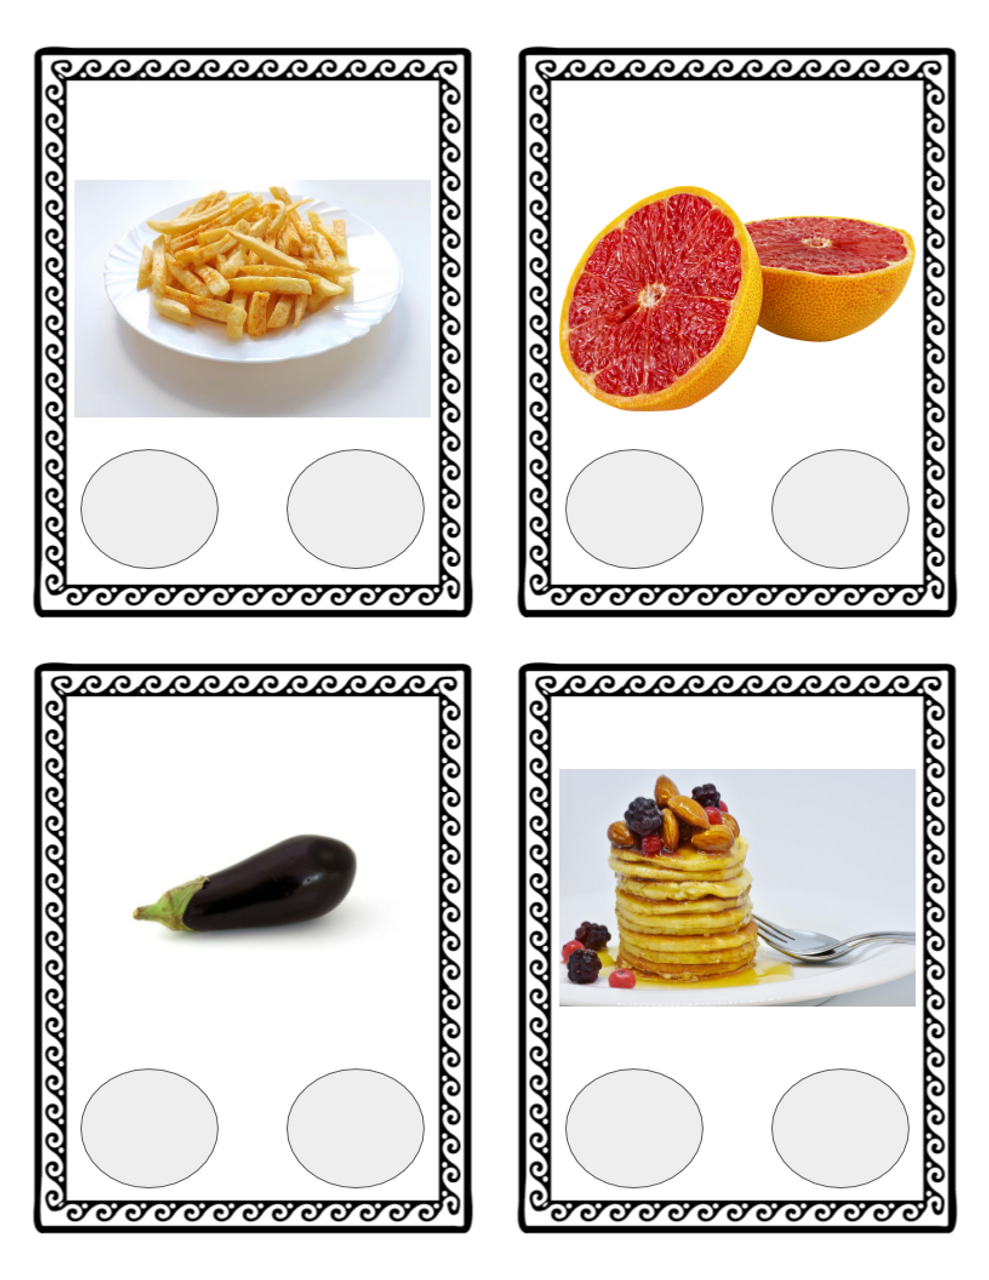 Phonological Awareness Picture Cards for Two-Syllable Compound Words